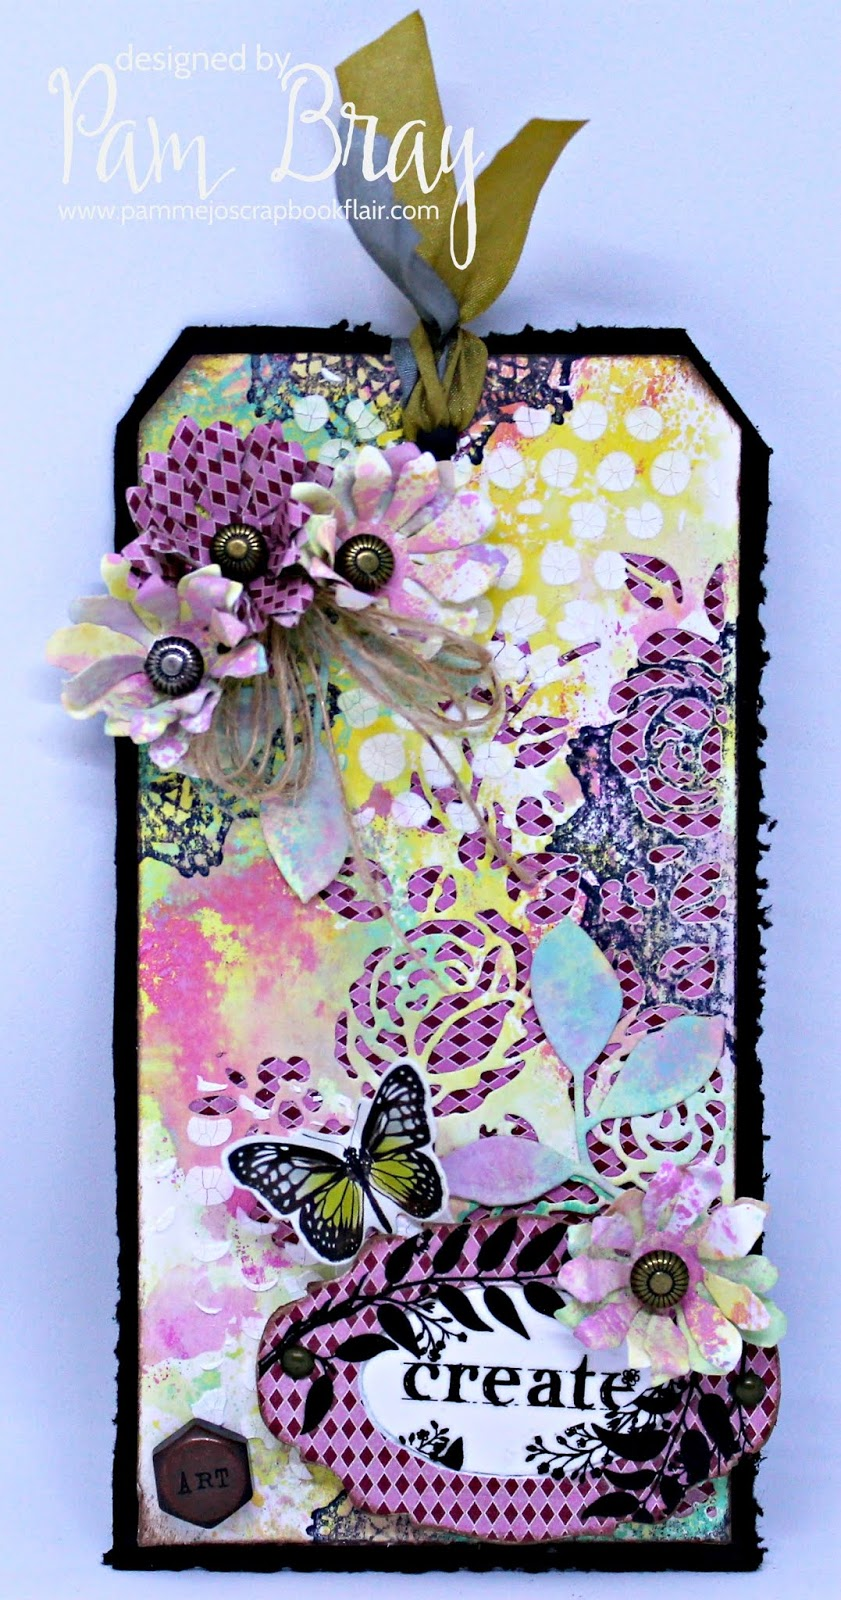 Mixed Media Tag designed by Pam Bray featuring Ranger | Creative Scrapbooker Magazine